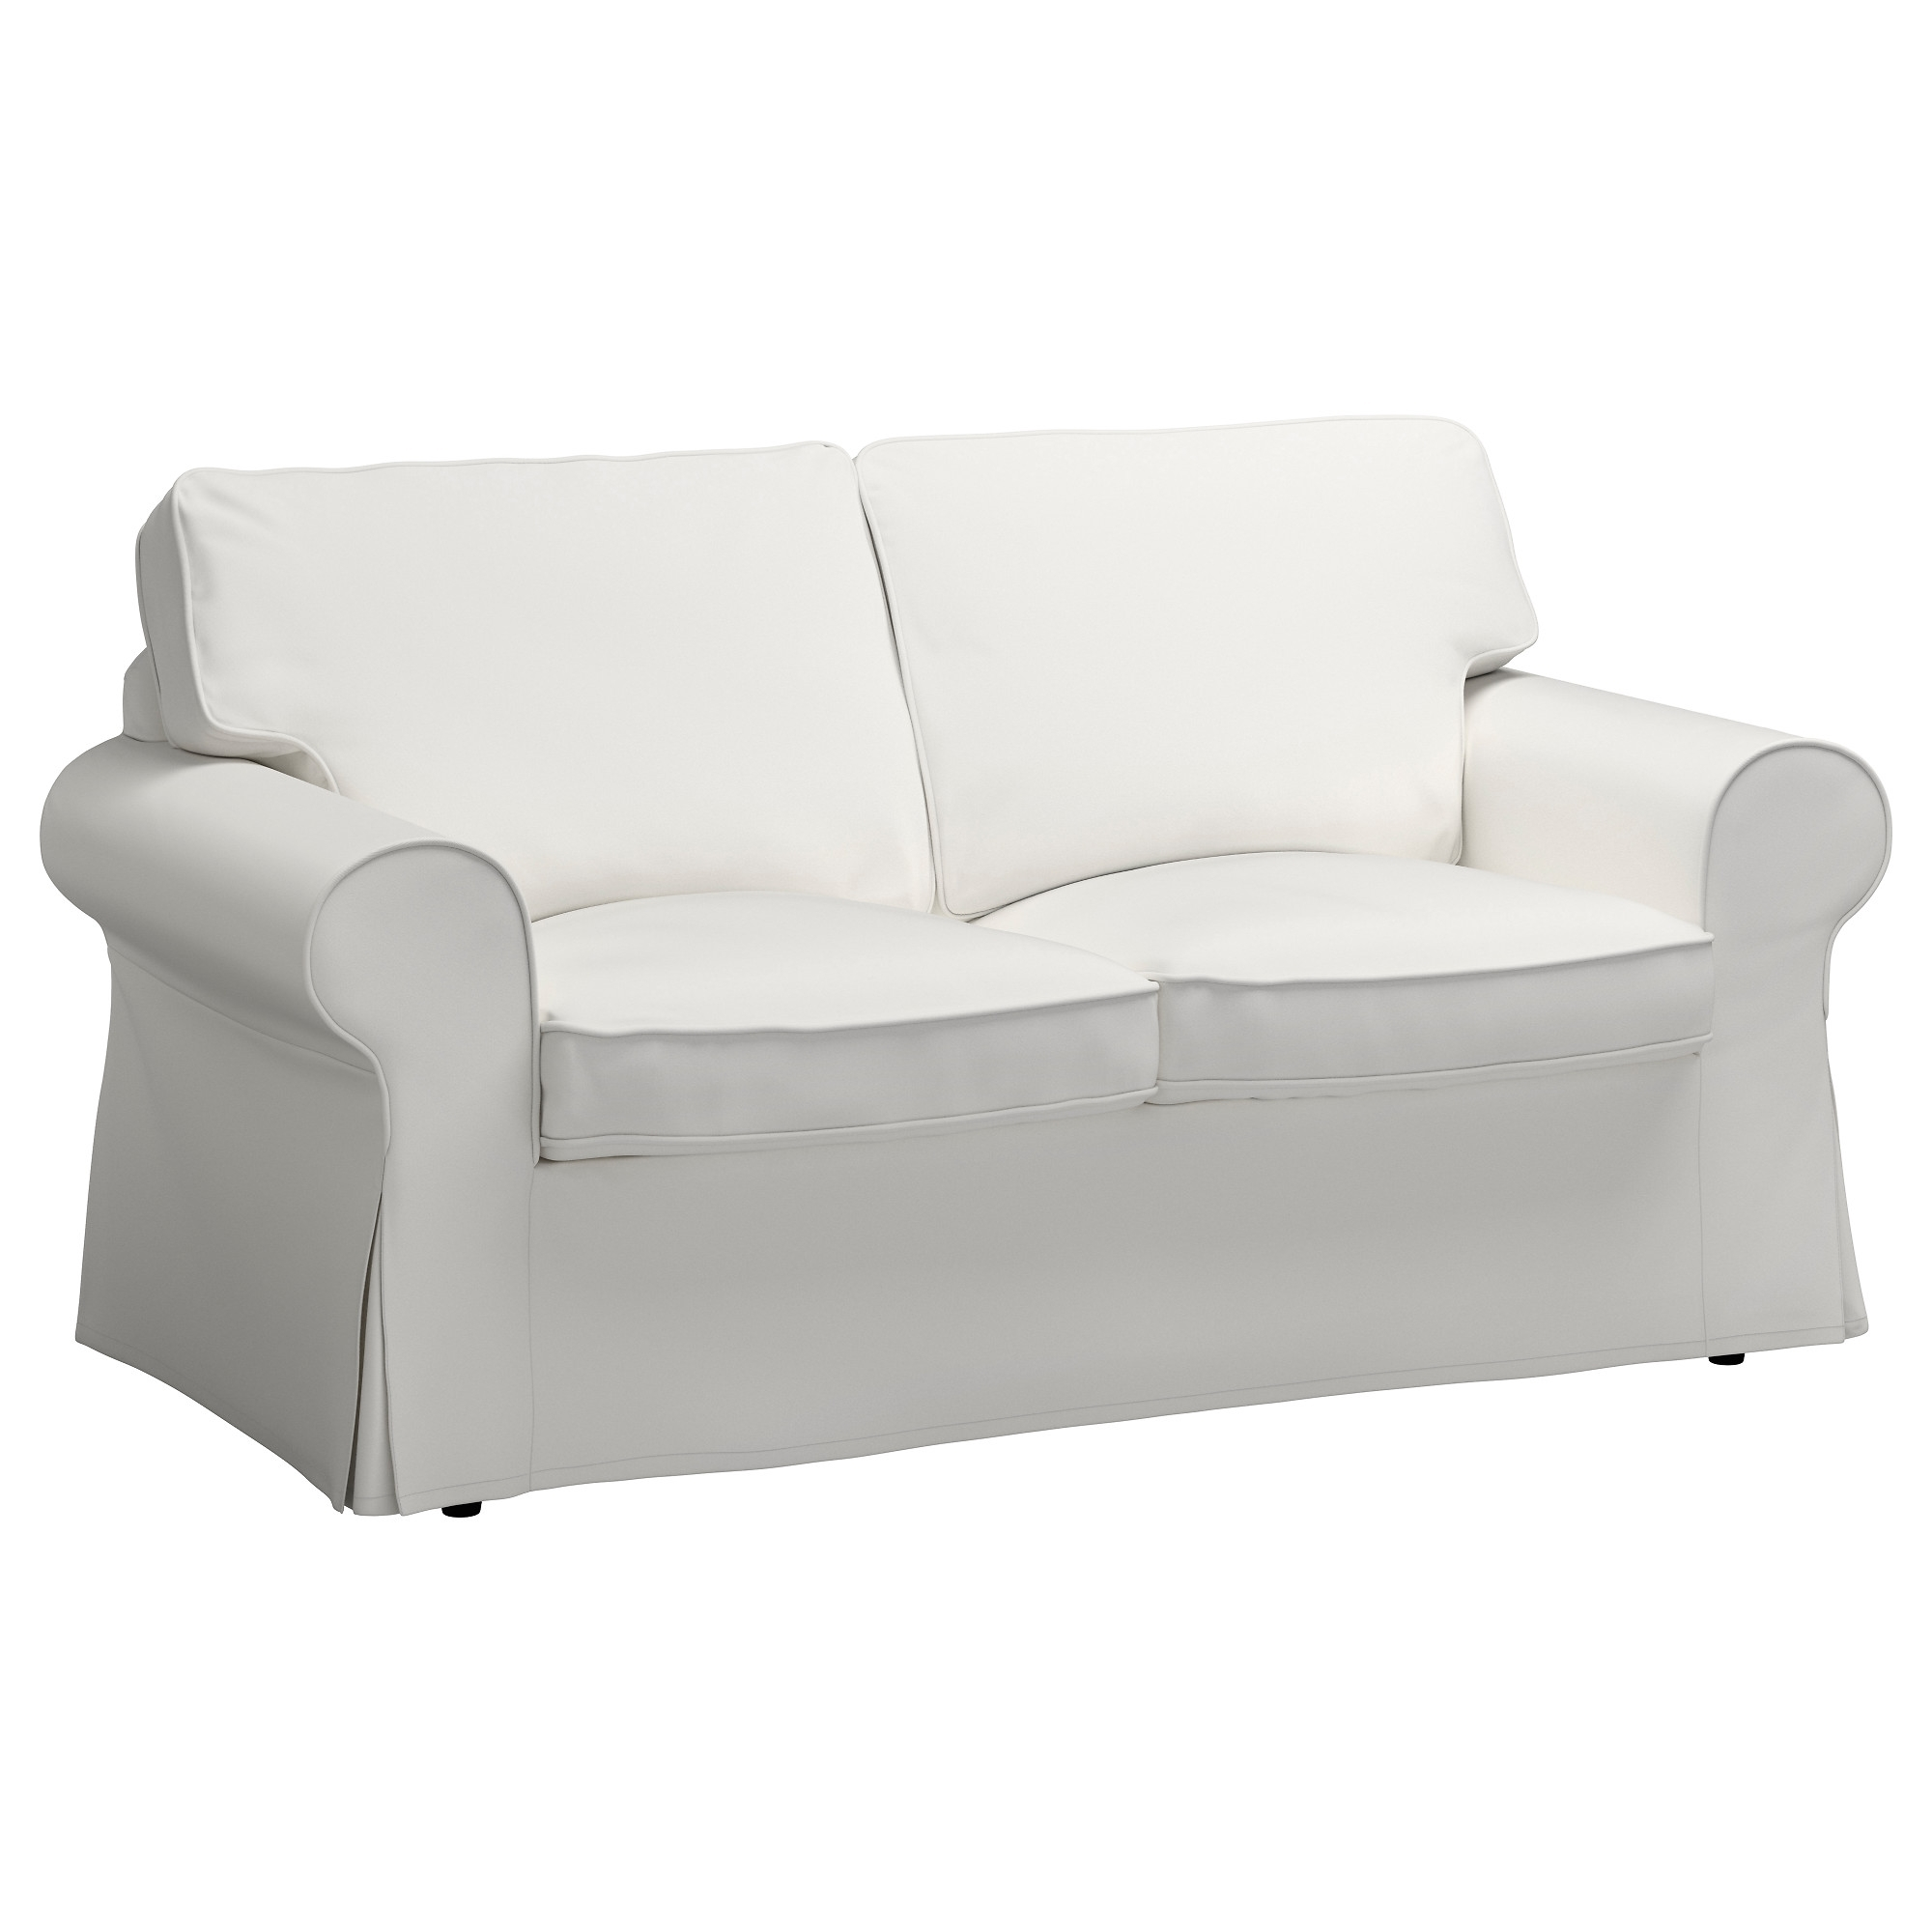 Aifaresidency Throughout Well Known Ikea Loveseat Sleeper Sofas (View 10 of 20)